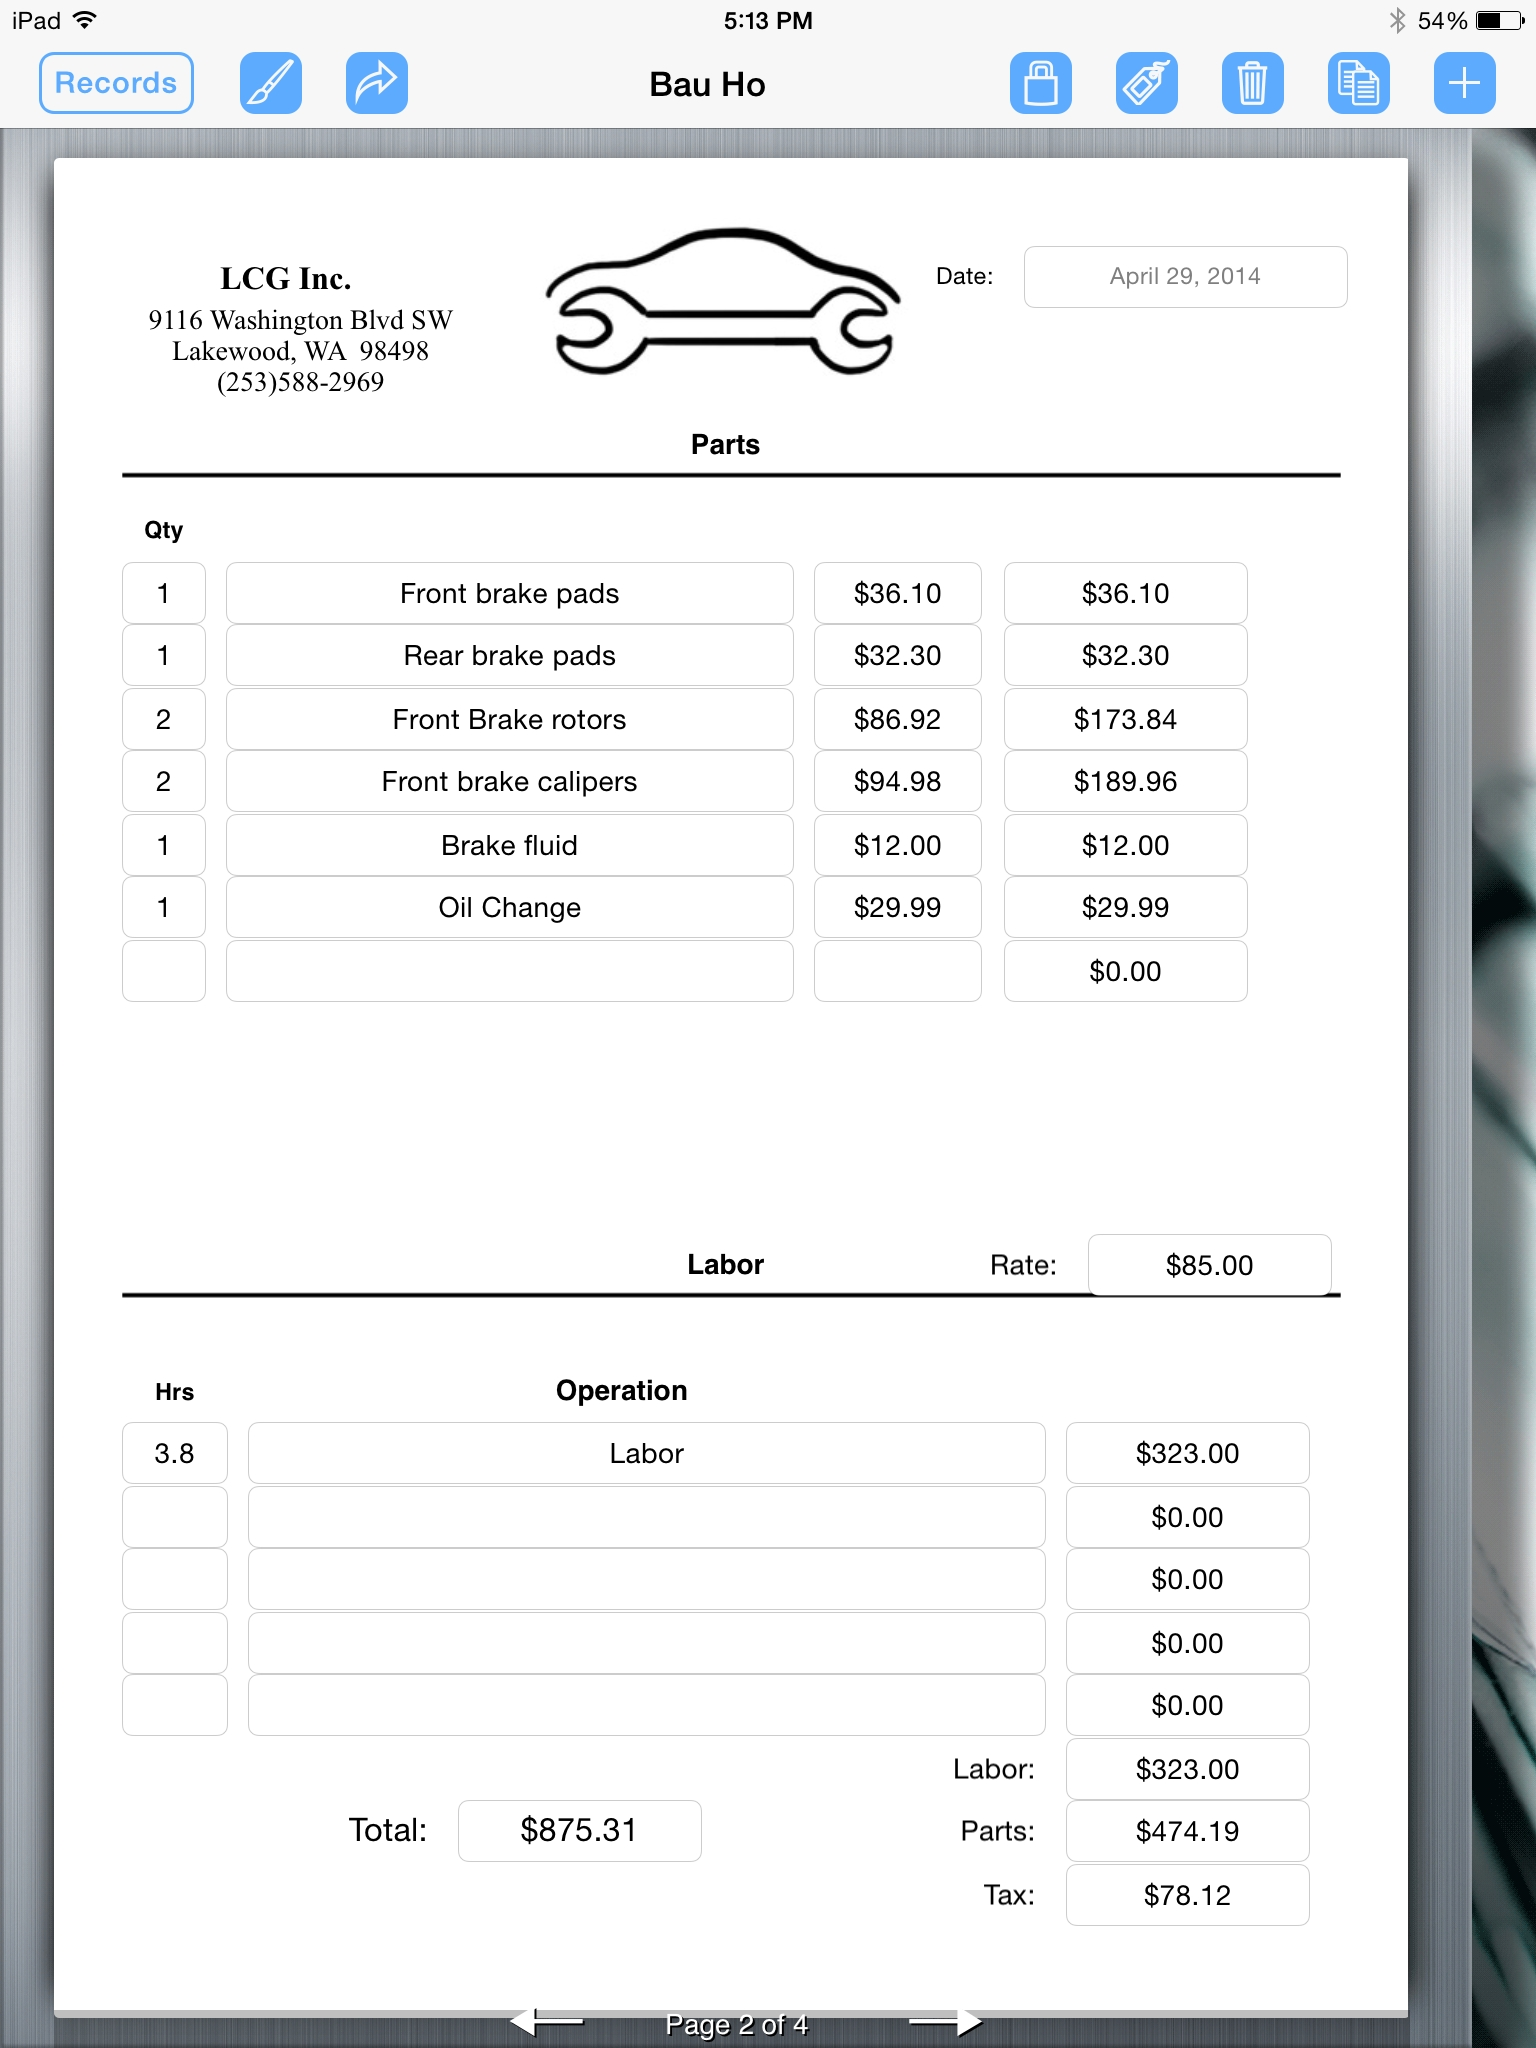 auto repair invoices auto repair service uses ipad for creating an invoice form 1536 X 2048